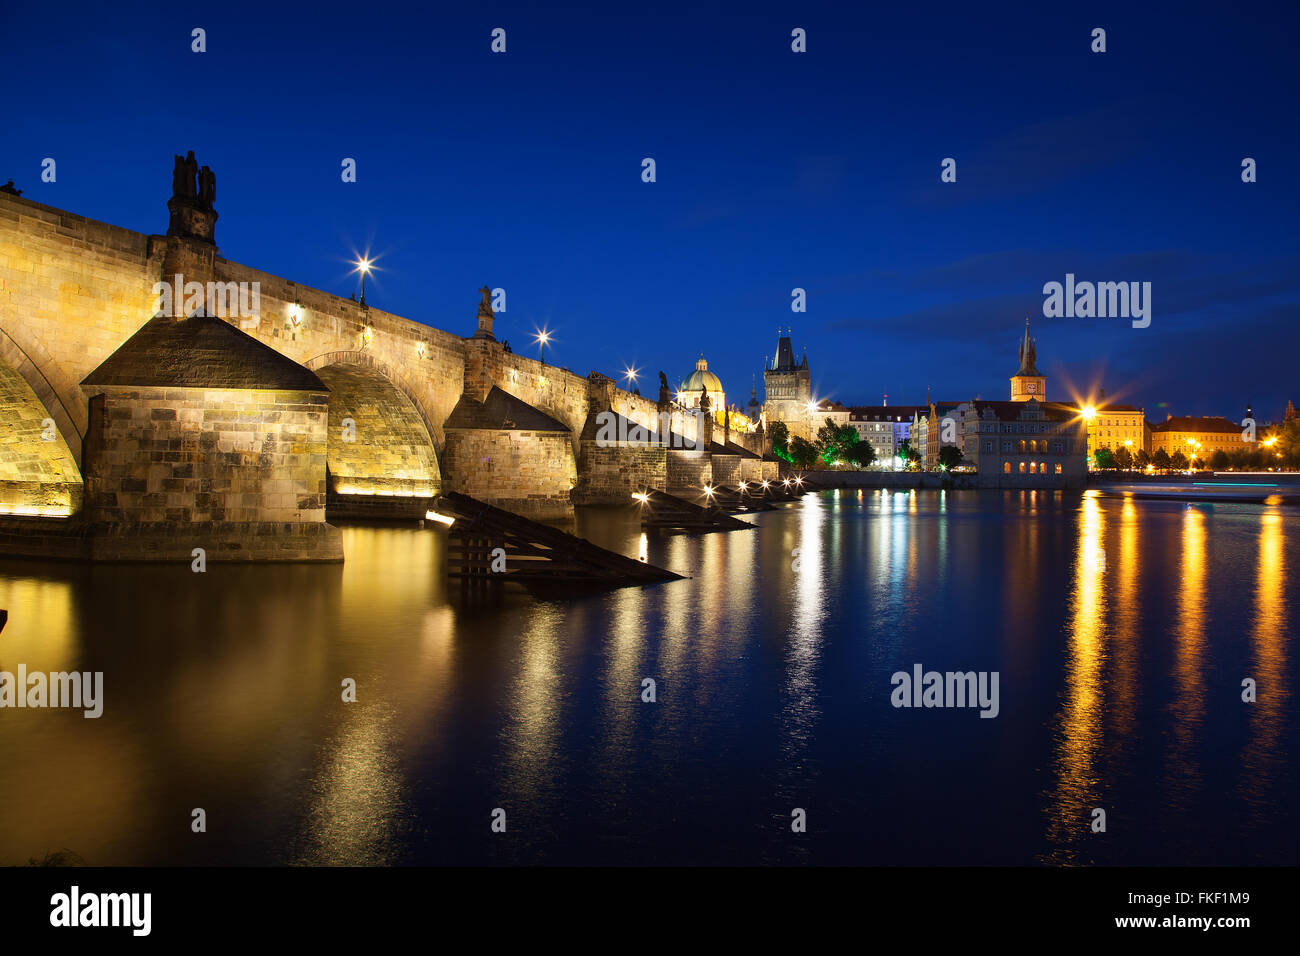 View at night across the Vltava River in Prague with Charles Bridge St Francis Church - Stock Image